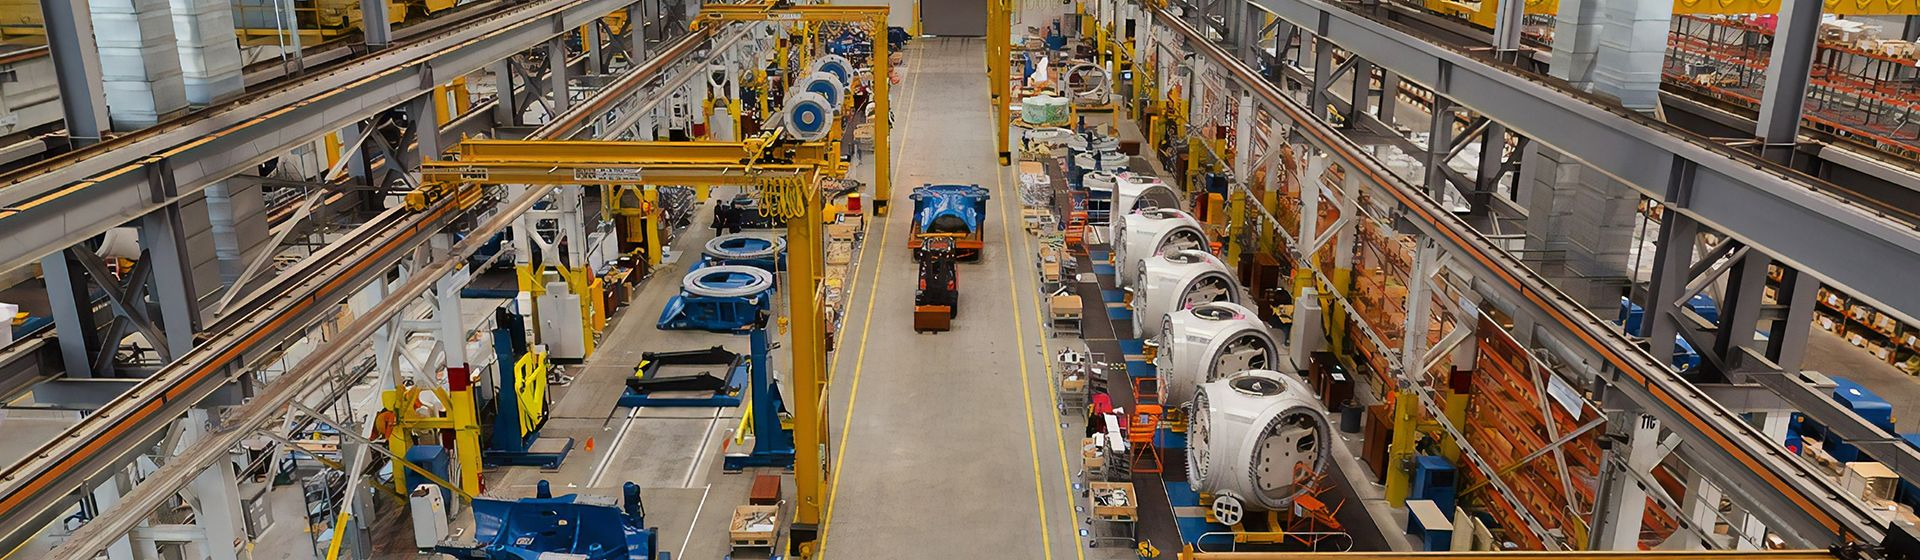 Key points to consider when financing your manufacturing business's CapEx